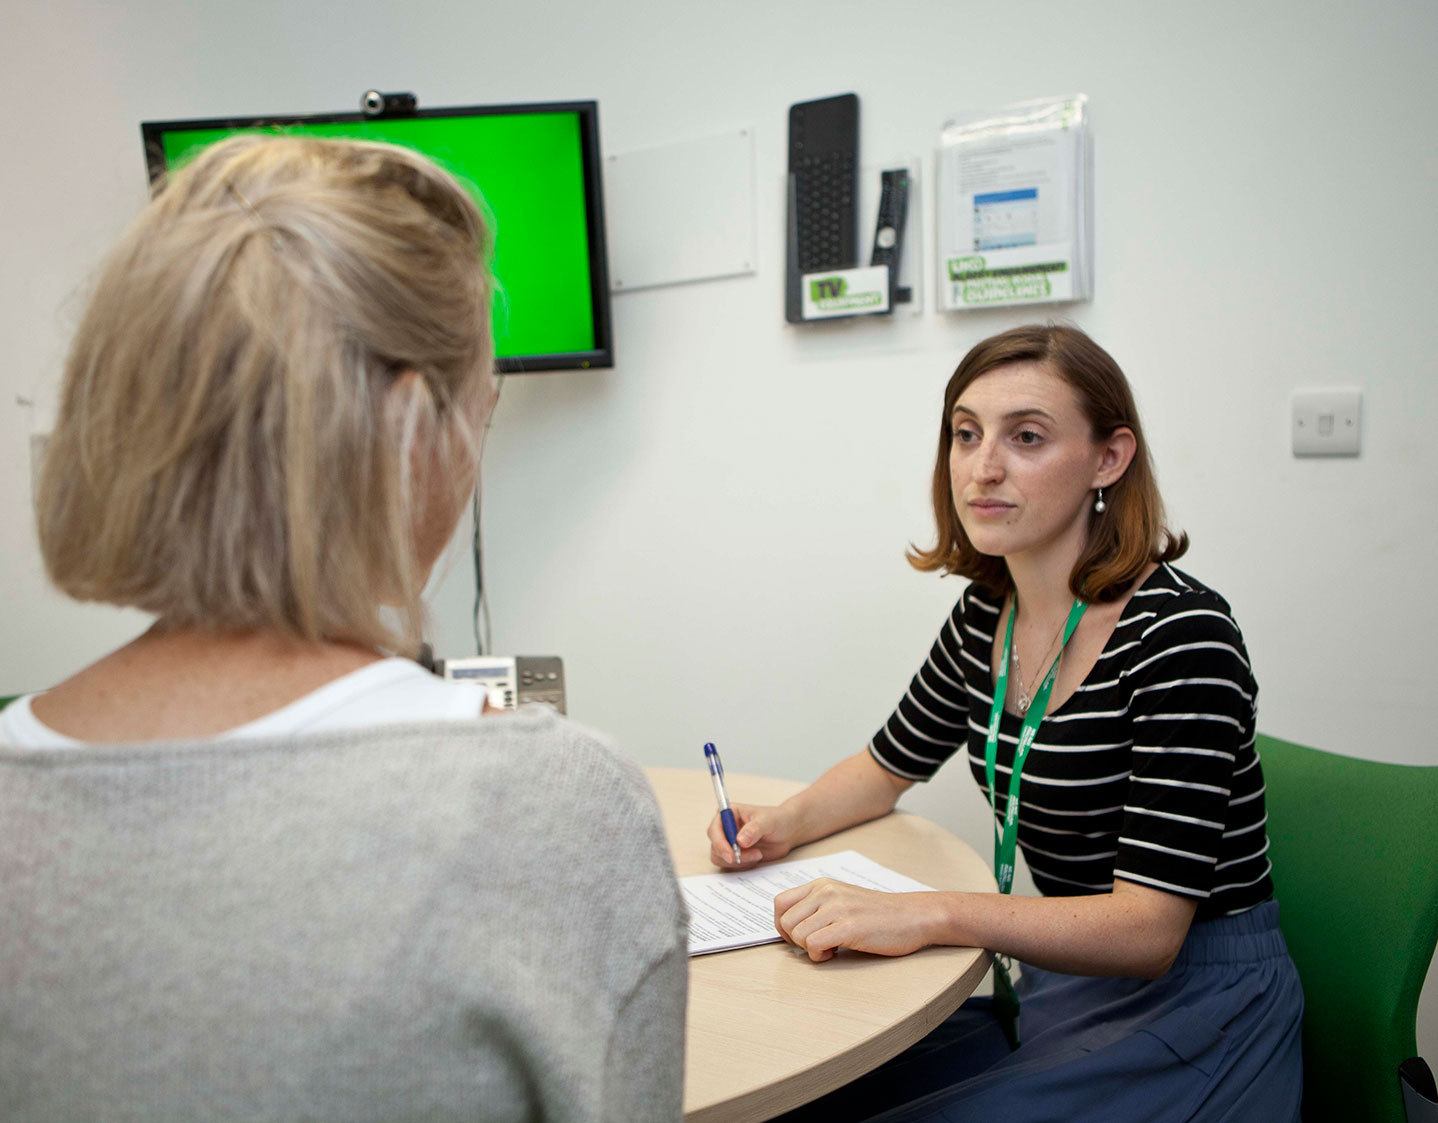 A female member of Macmillan staff interviews a woman in an office.